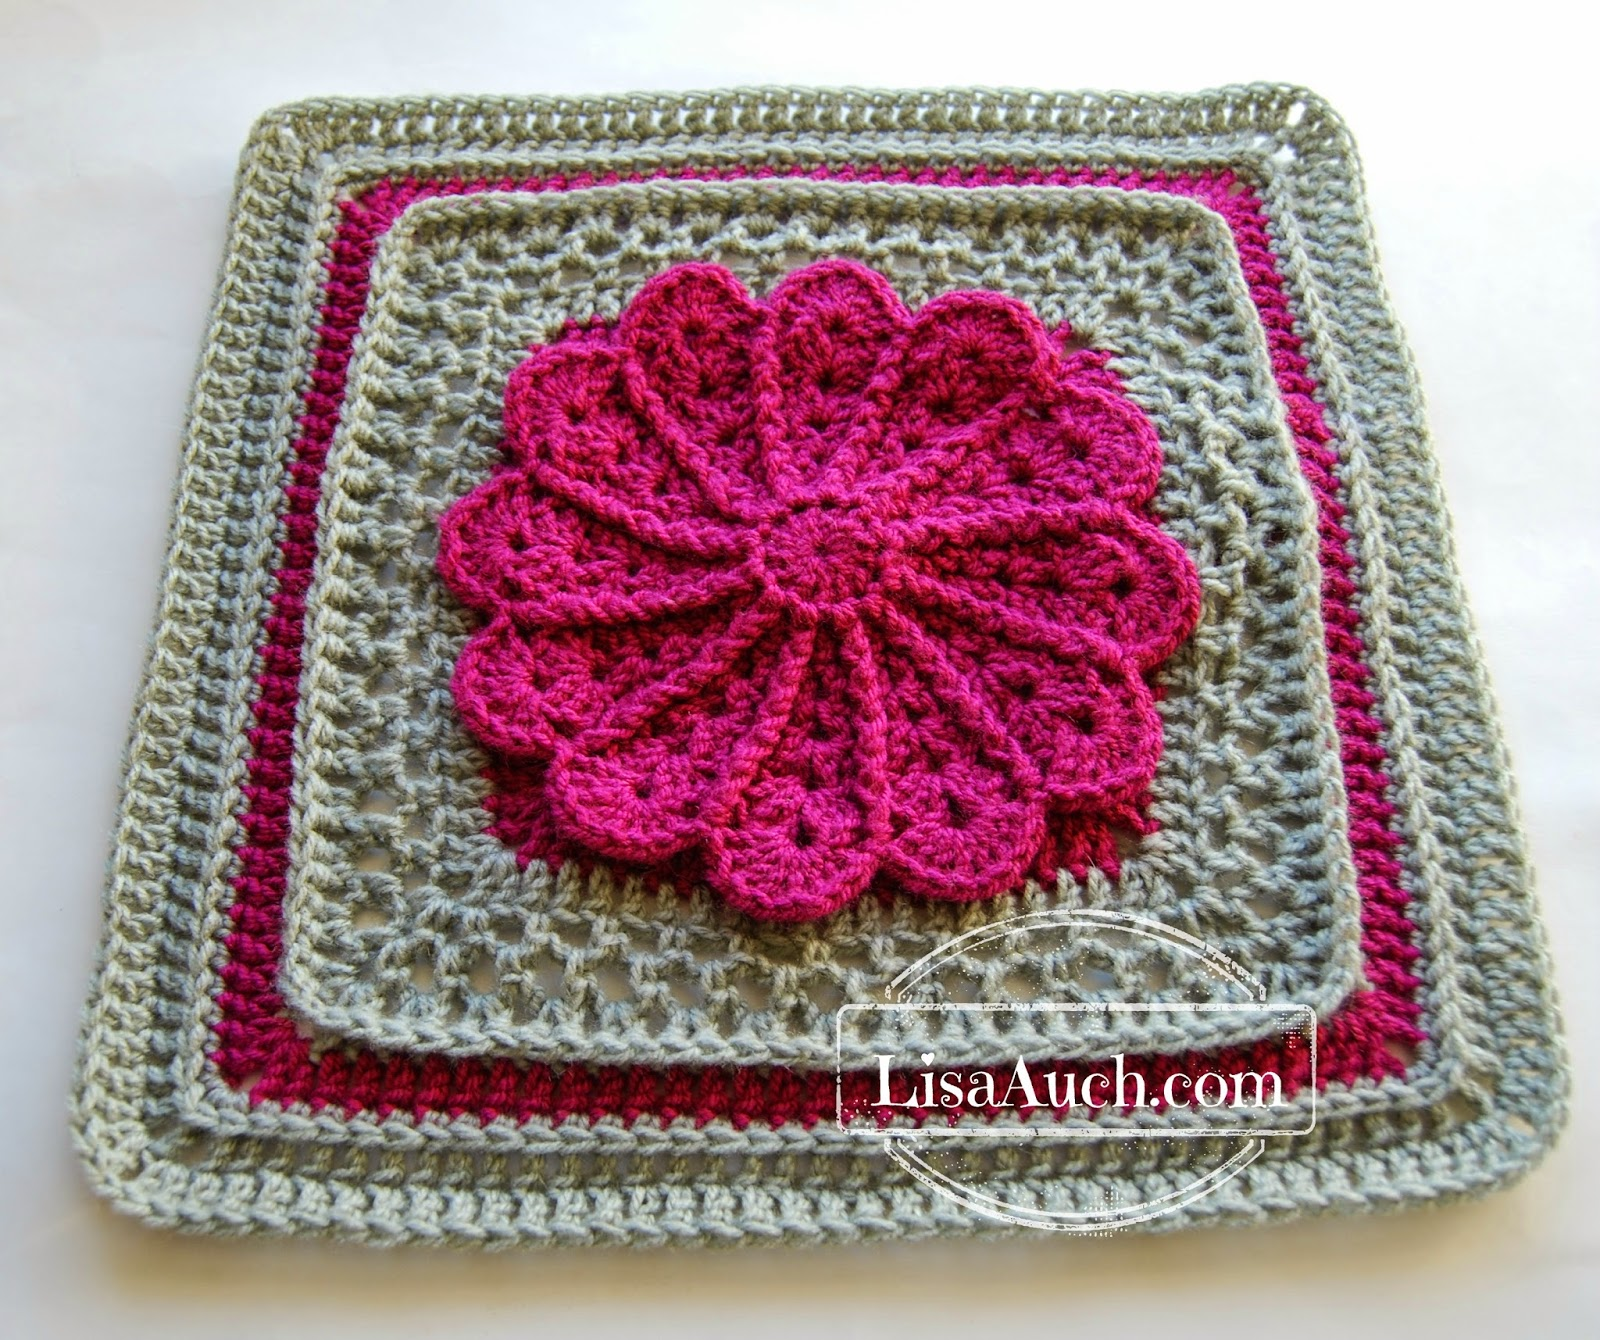 A free crochet 12 inch Square afghan pattern Pane in my Dahlia